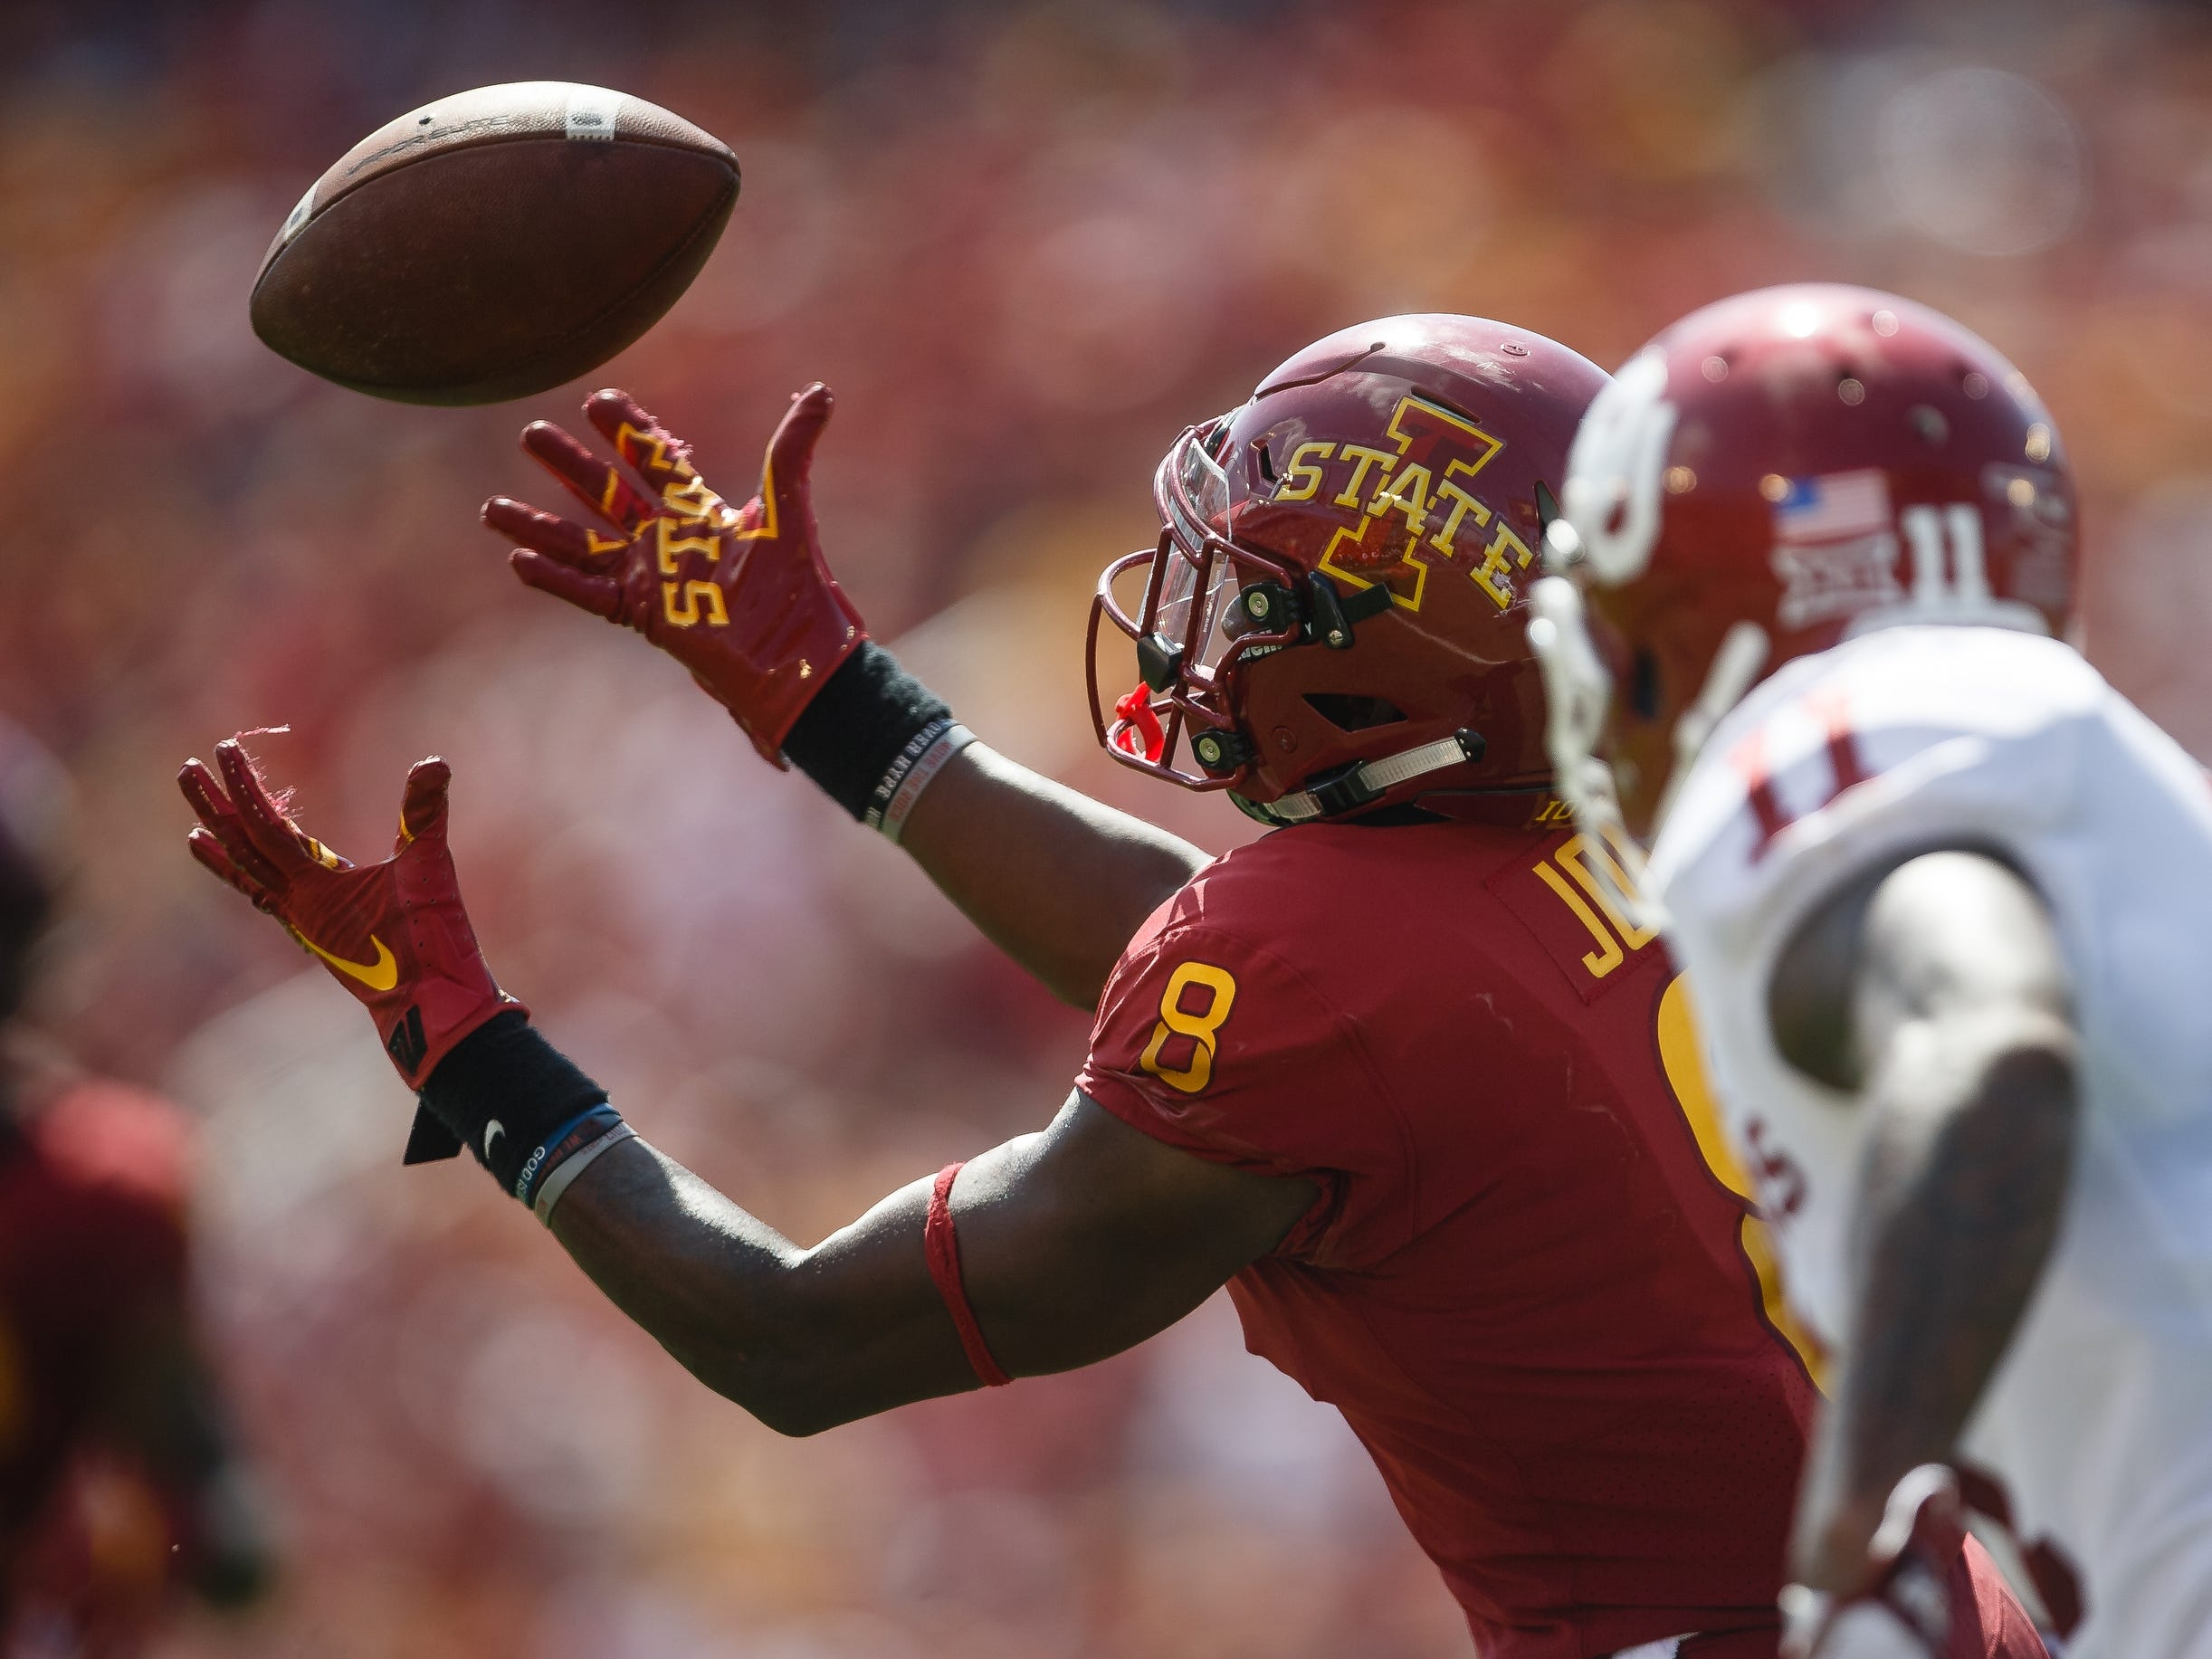 Iowa State's Deshaunte Jones (8) bobbles a pass during their football game at Jack Trice Stadium against Oklahoma on Saturday, Sept. 15, 2018 in Ames. Oklahoma would go on to win 37-27.